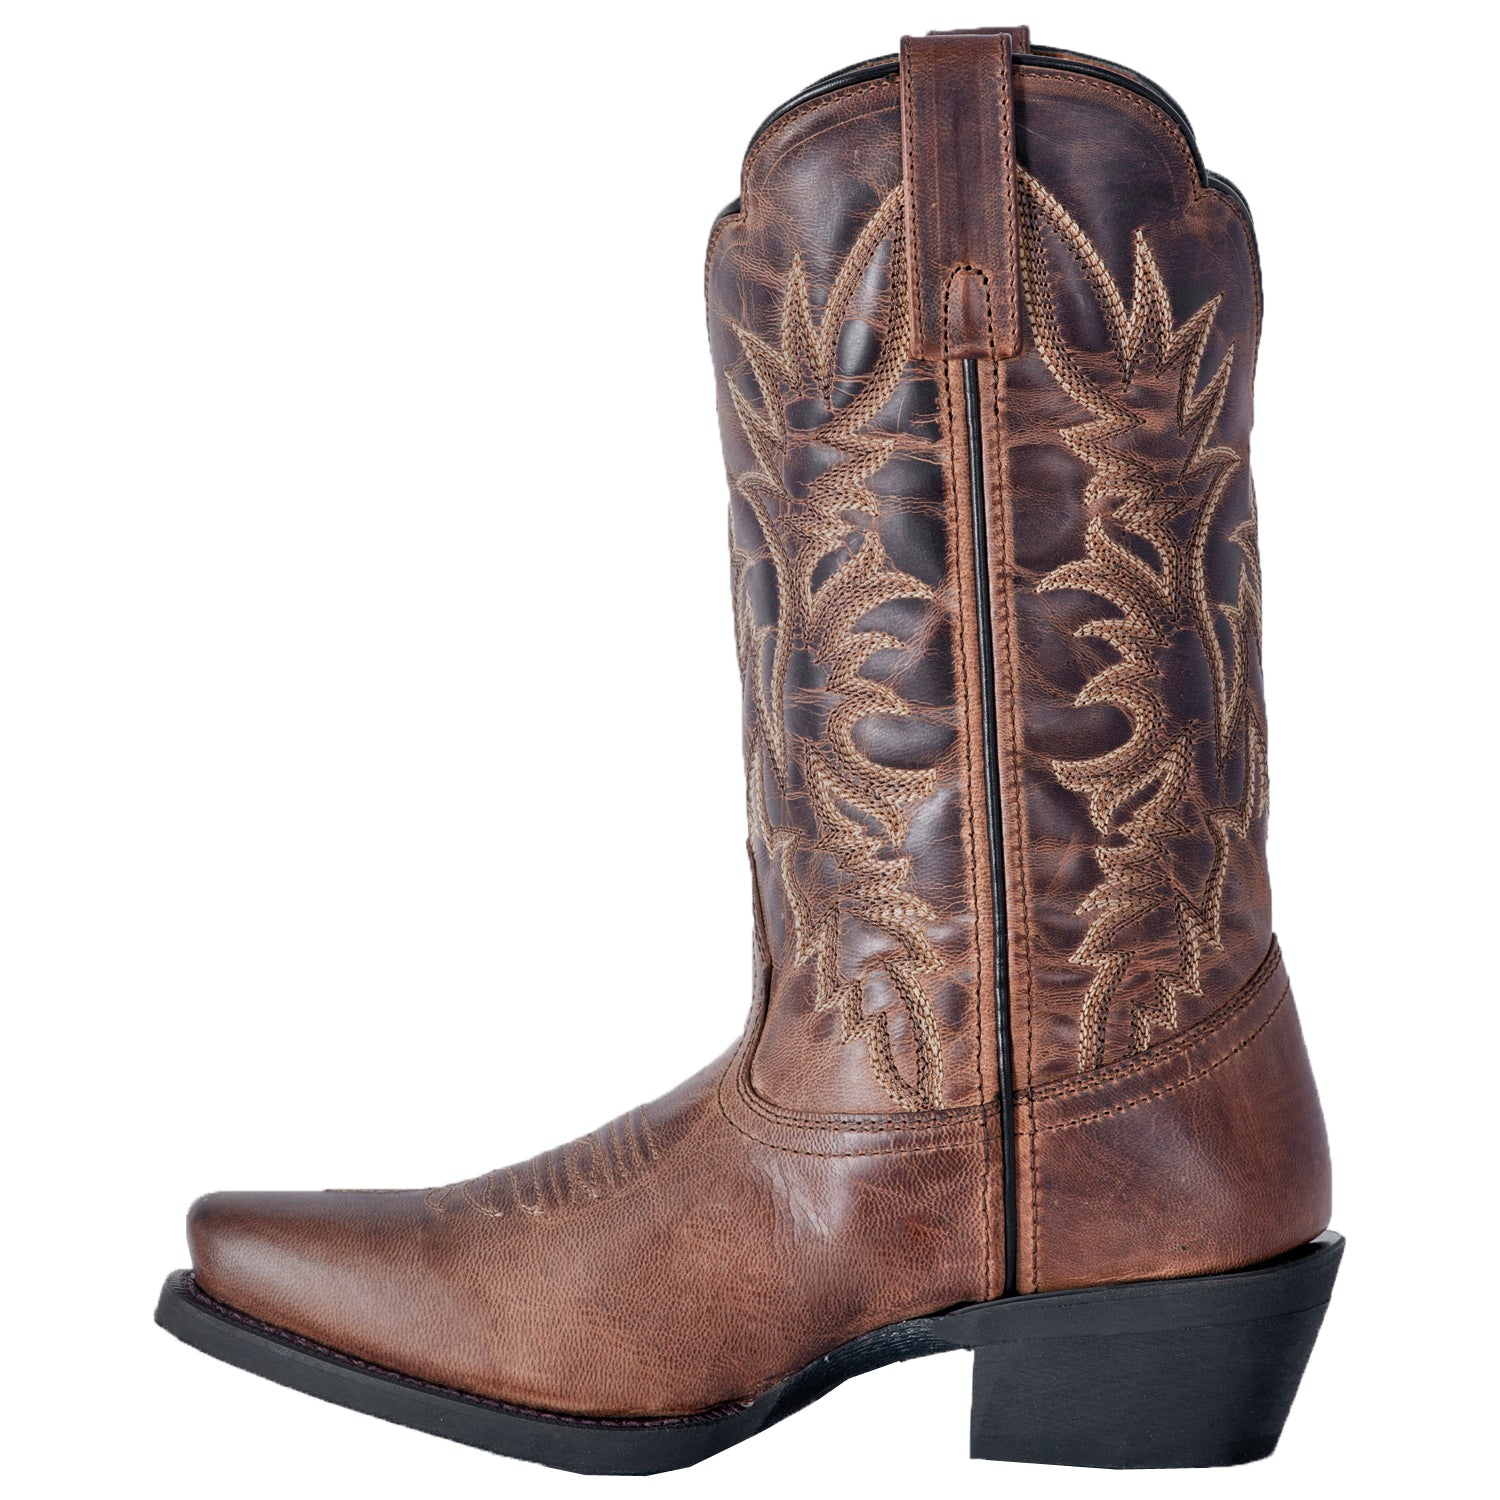 MALINDA LEATHER BOOT